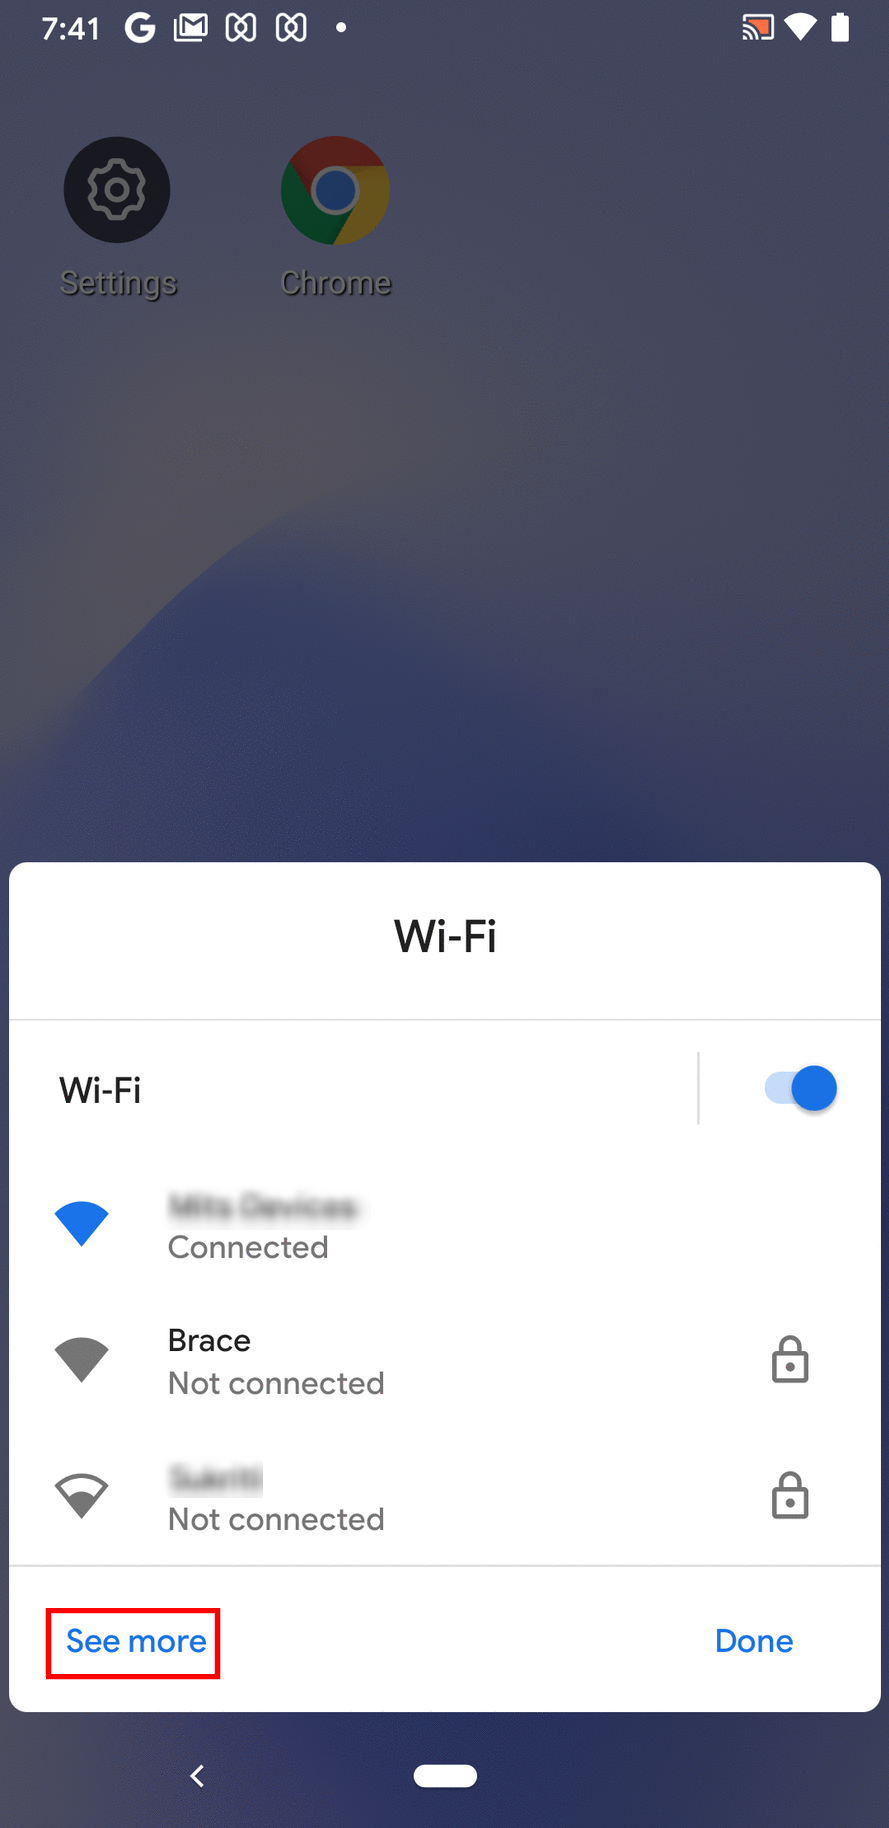 See More option in Wi-Fi panel